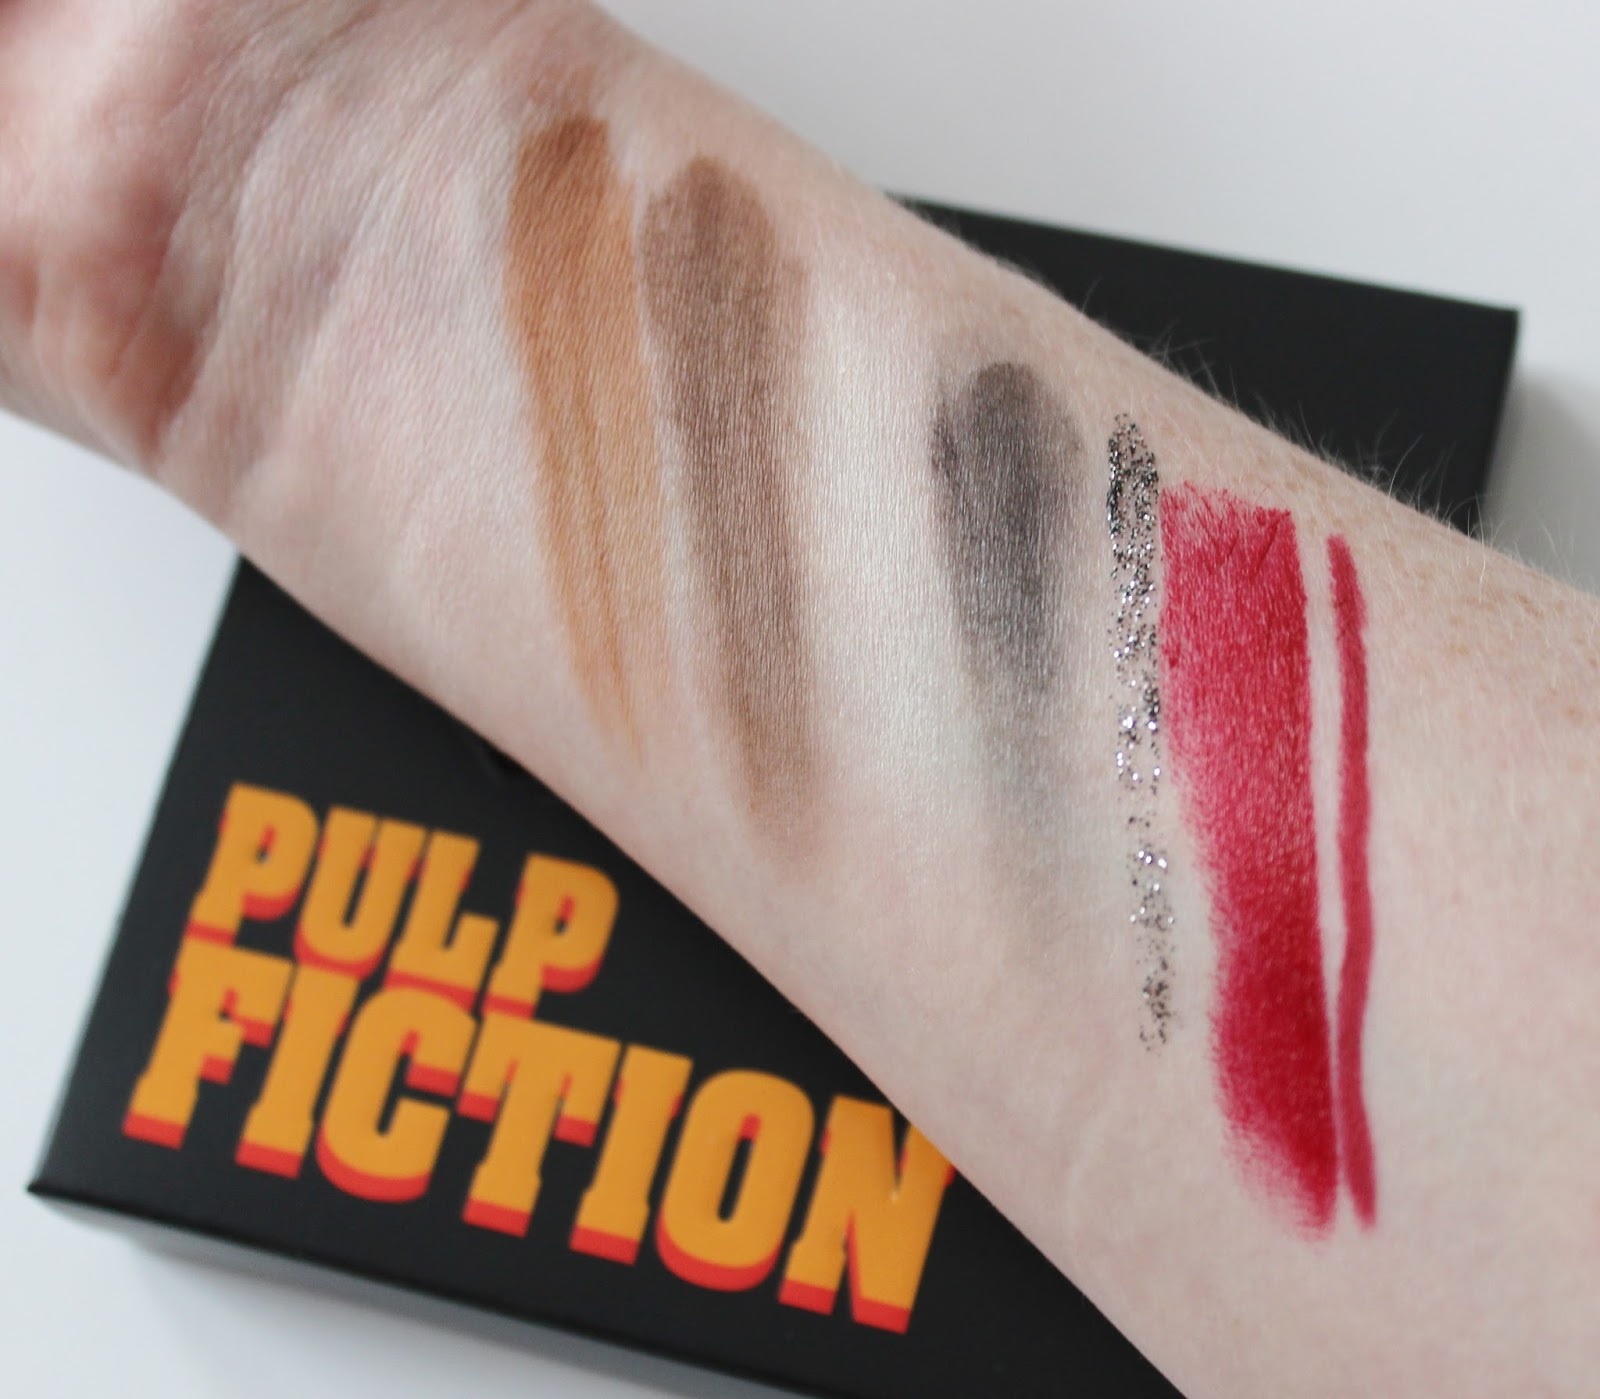 Urban Decay Pulp Fiction eye shadow palette, mrs mia wallace lipstick and liner swatches